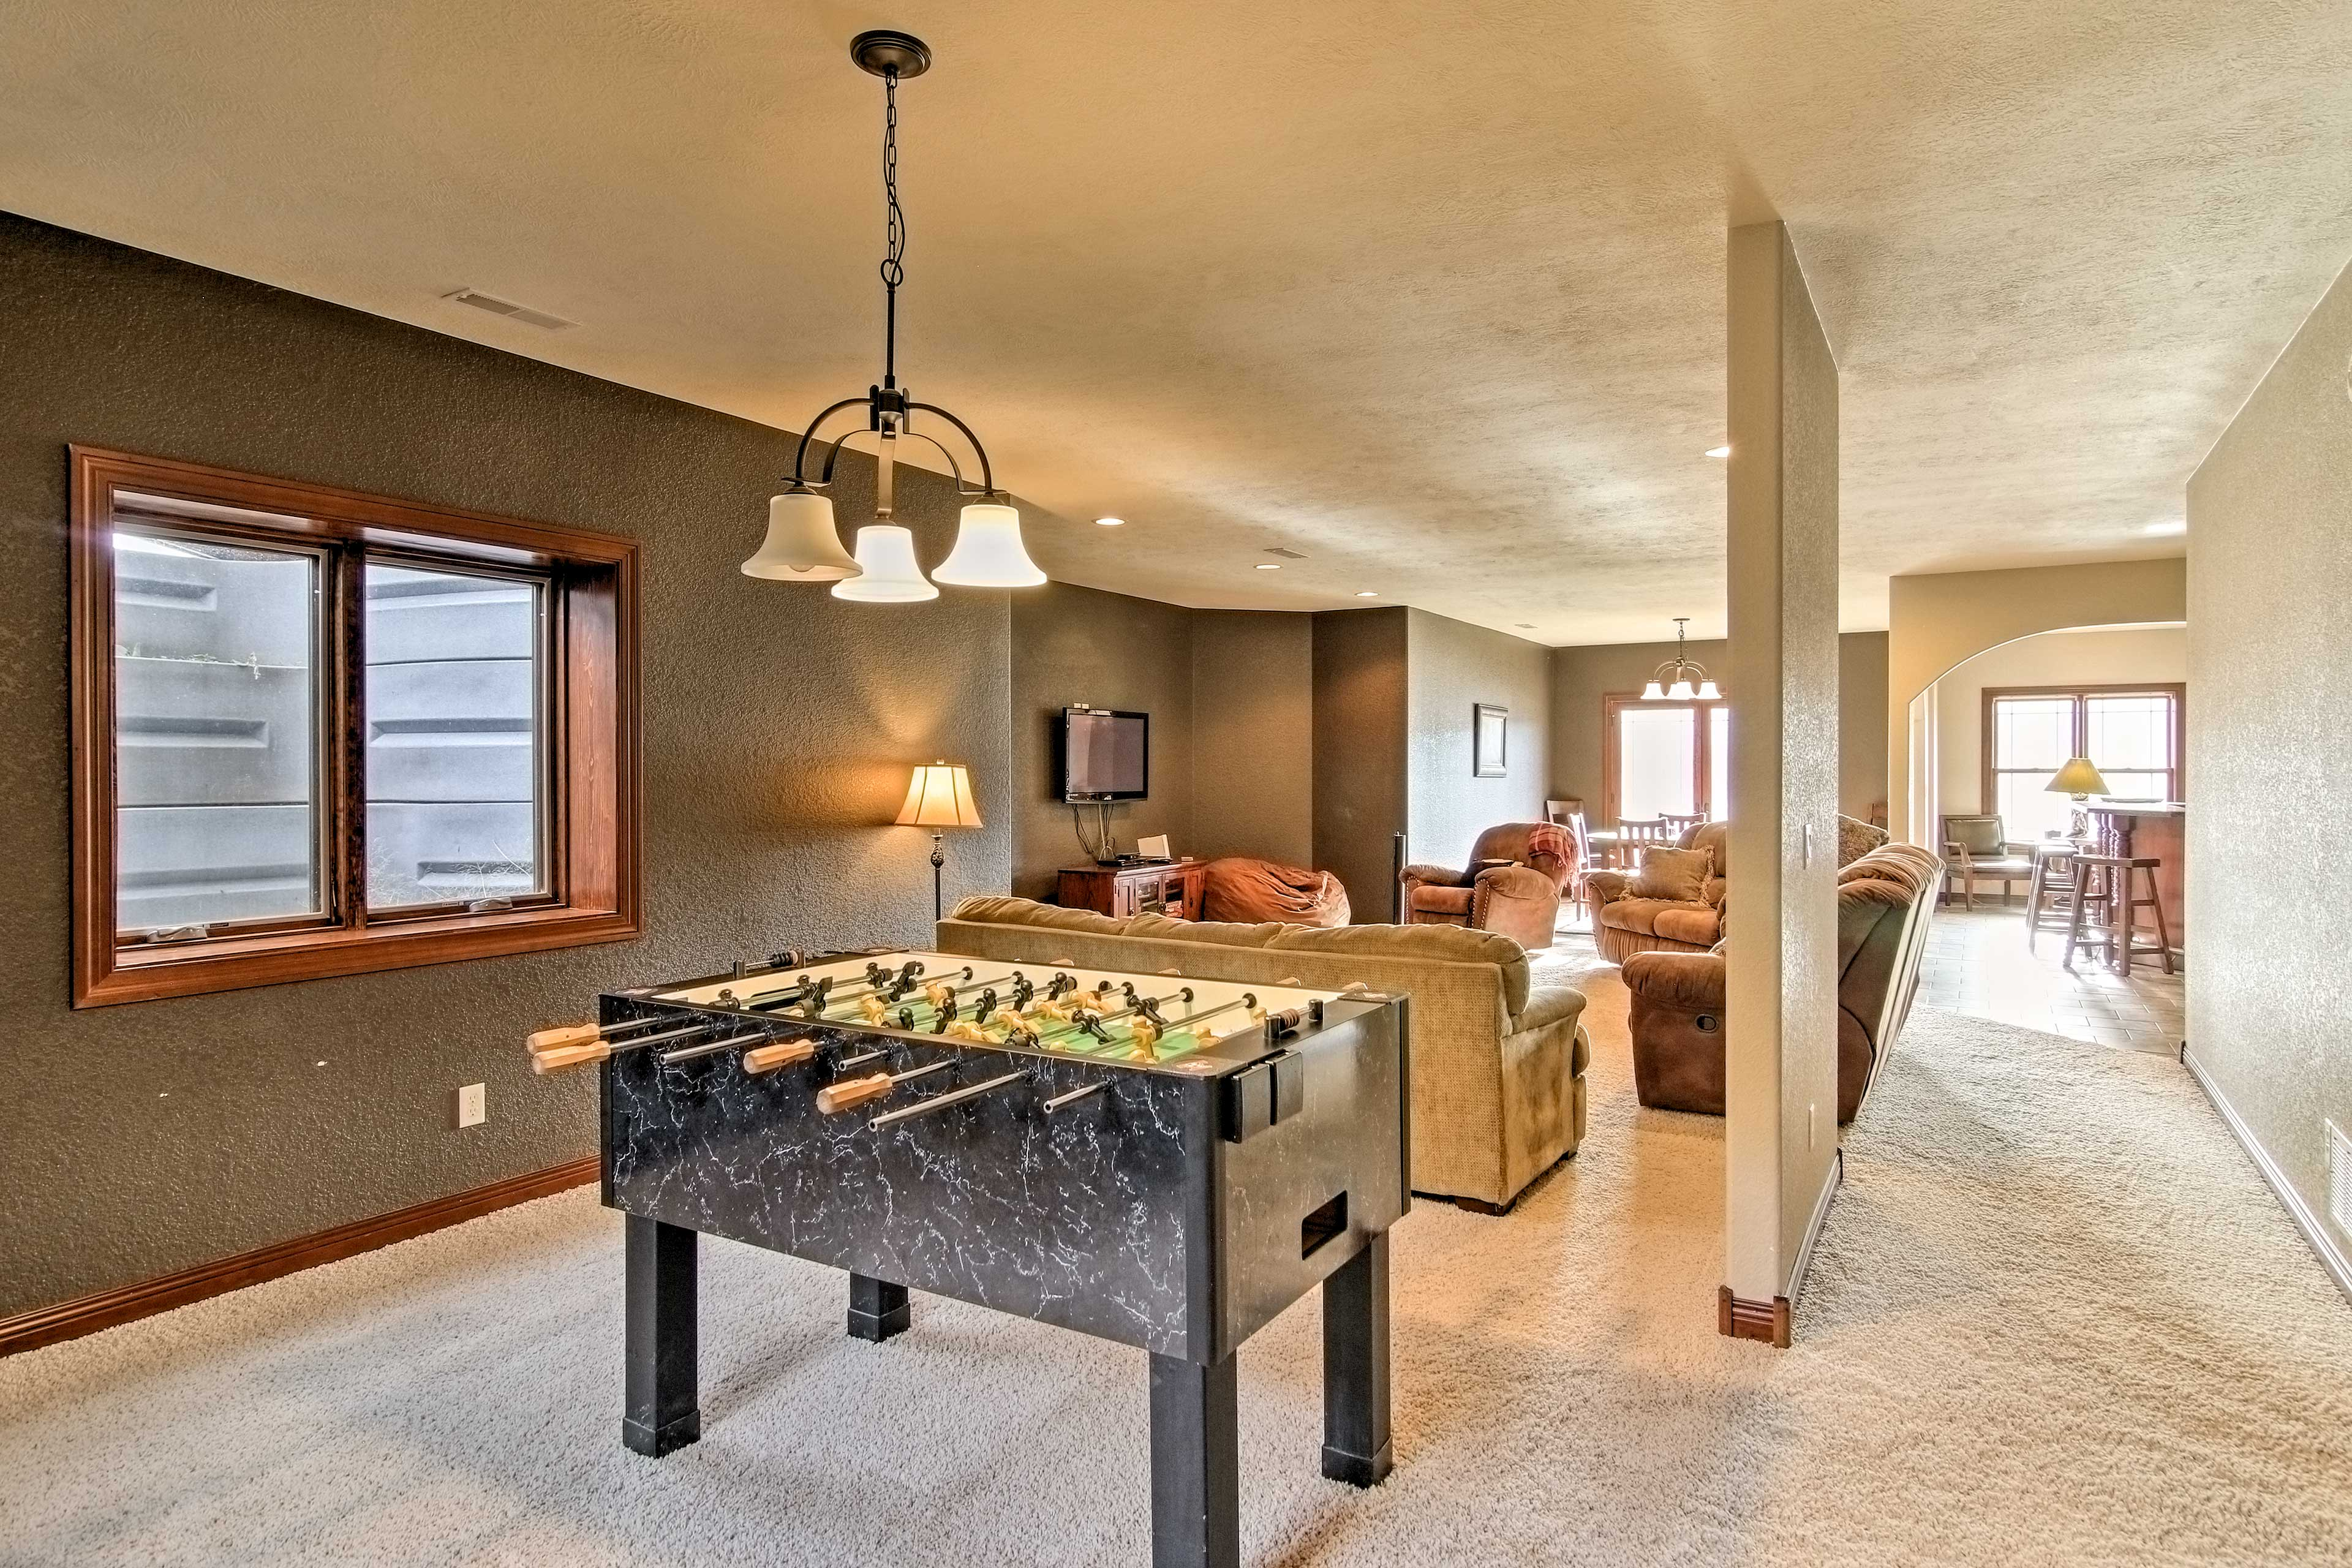 Enjoy a game of foosball or cards!